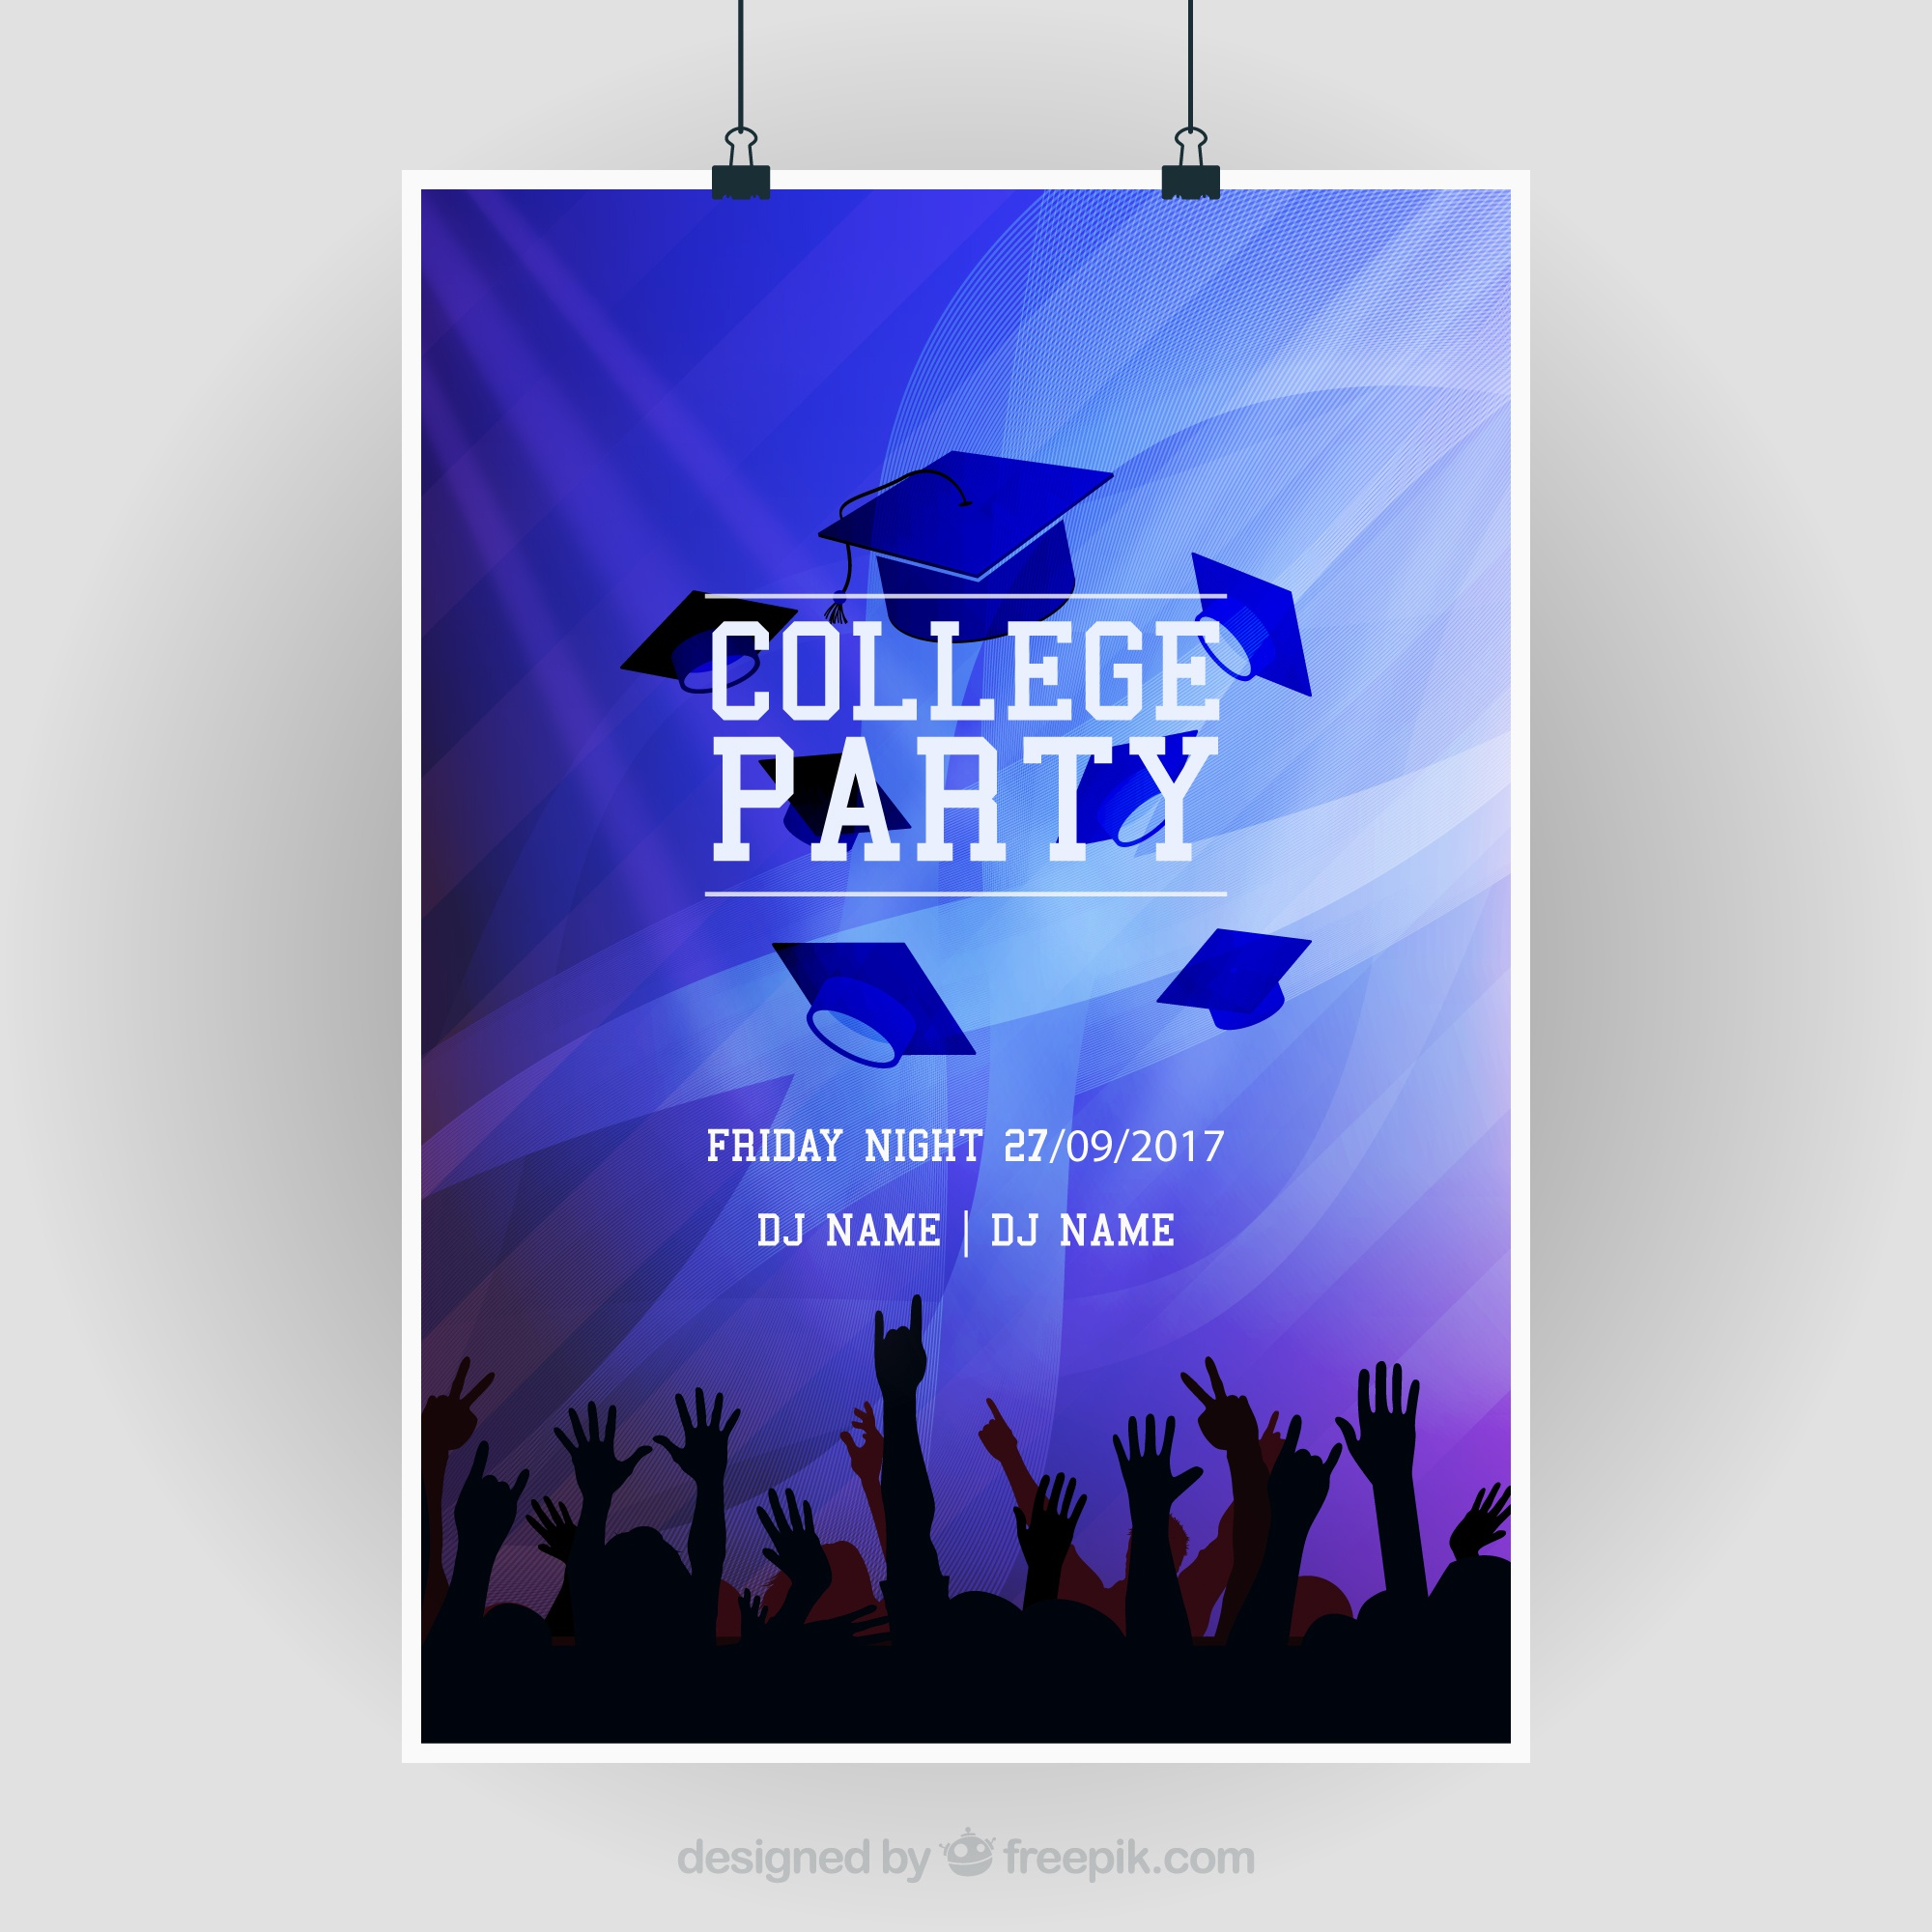 Abstract party brochure with silhouettes and graduation caps